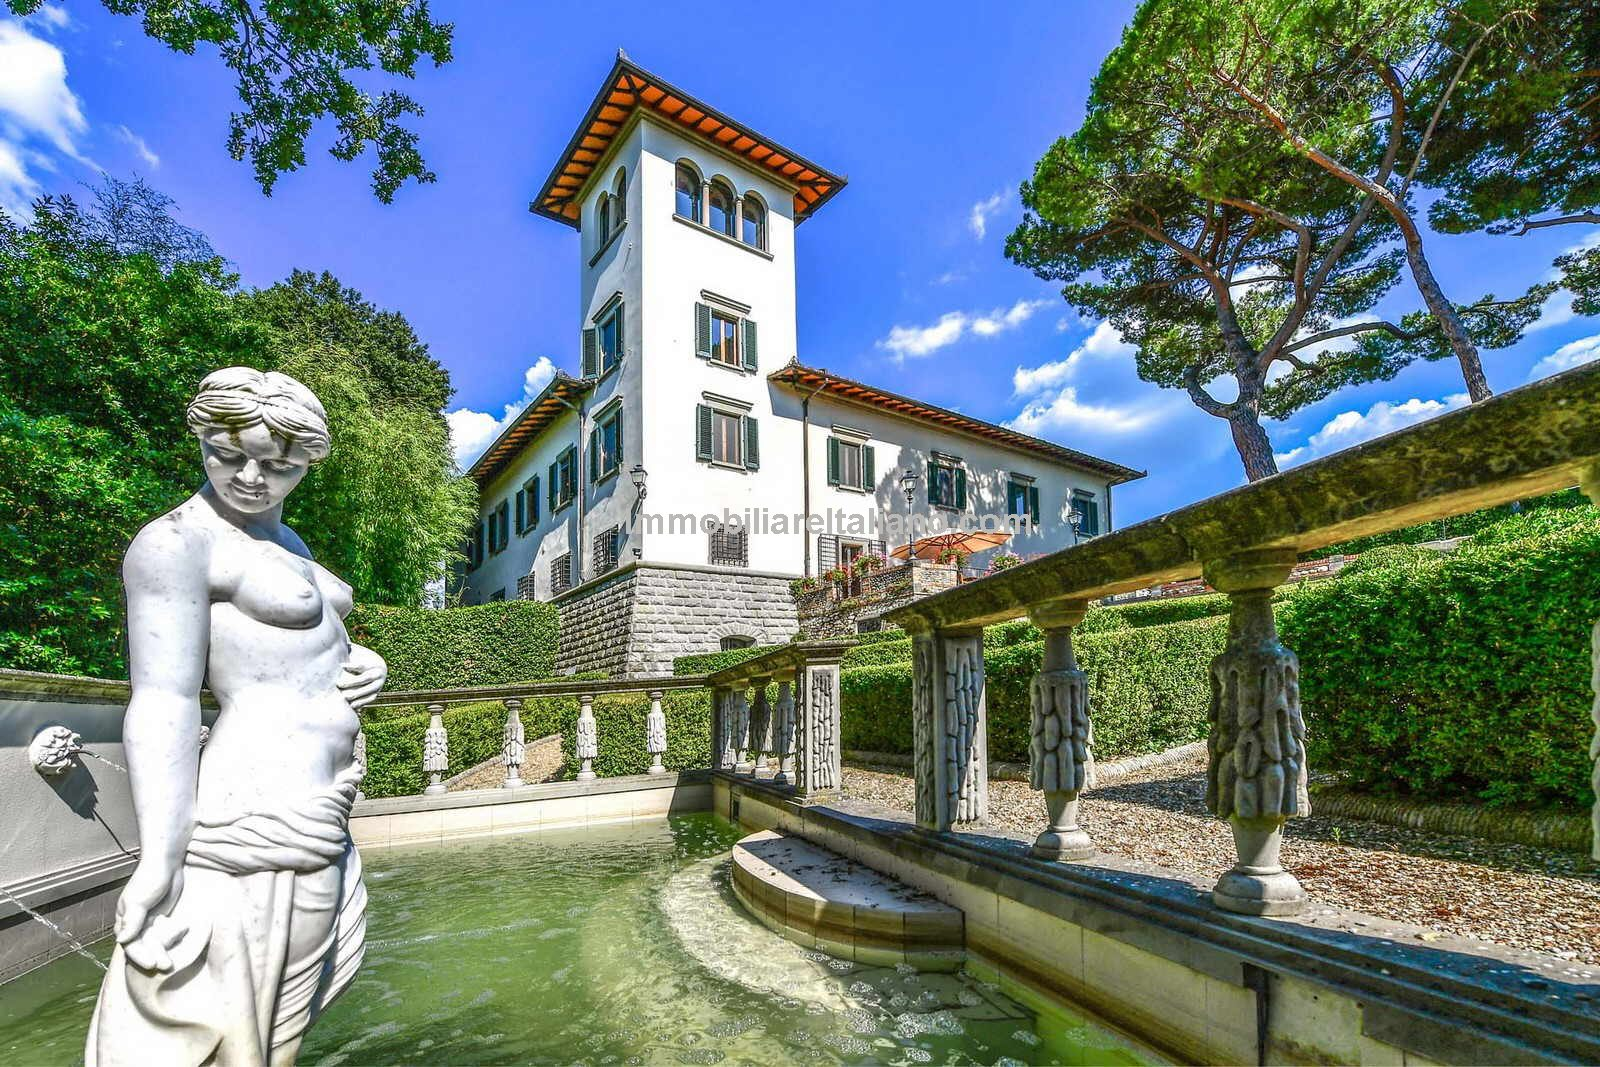 Luxury holiday complex for sale in Tuscany with Renaissance villa, dependances, Italian garden, three pools, vineyard and olive grove. Superb location and picture postcard views.